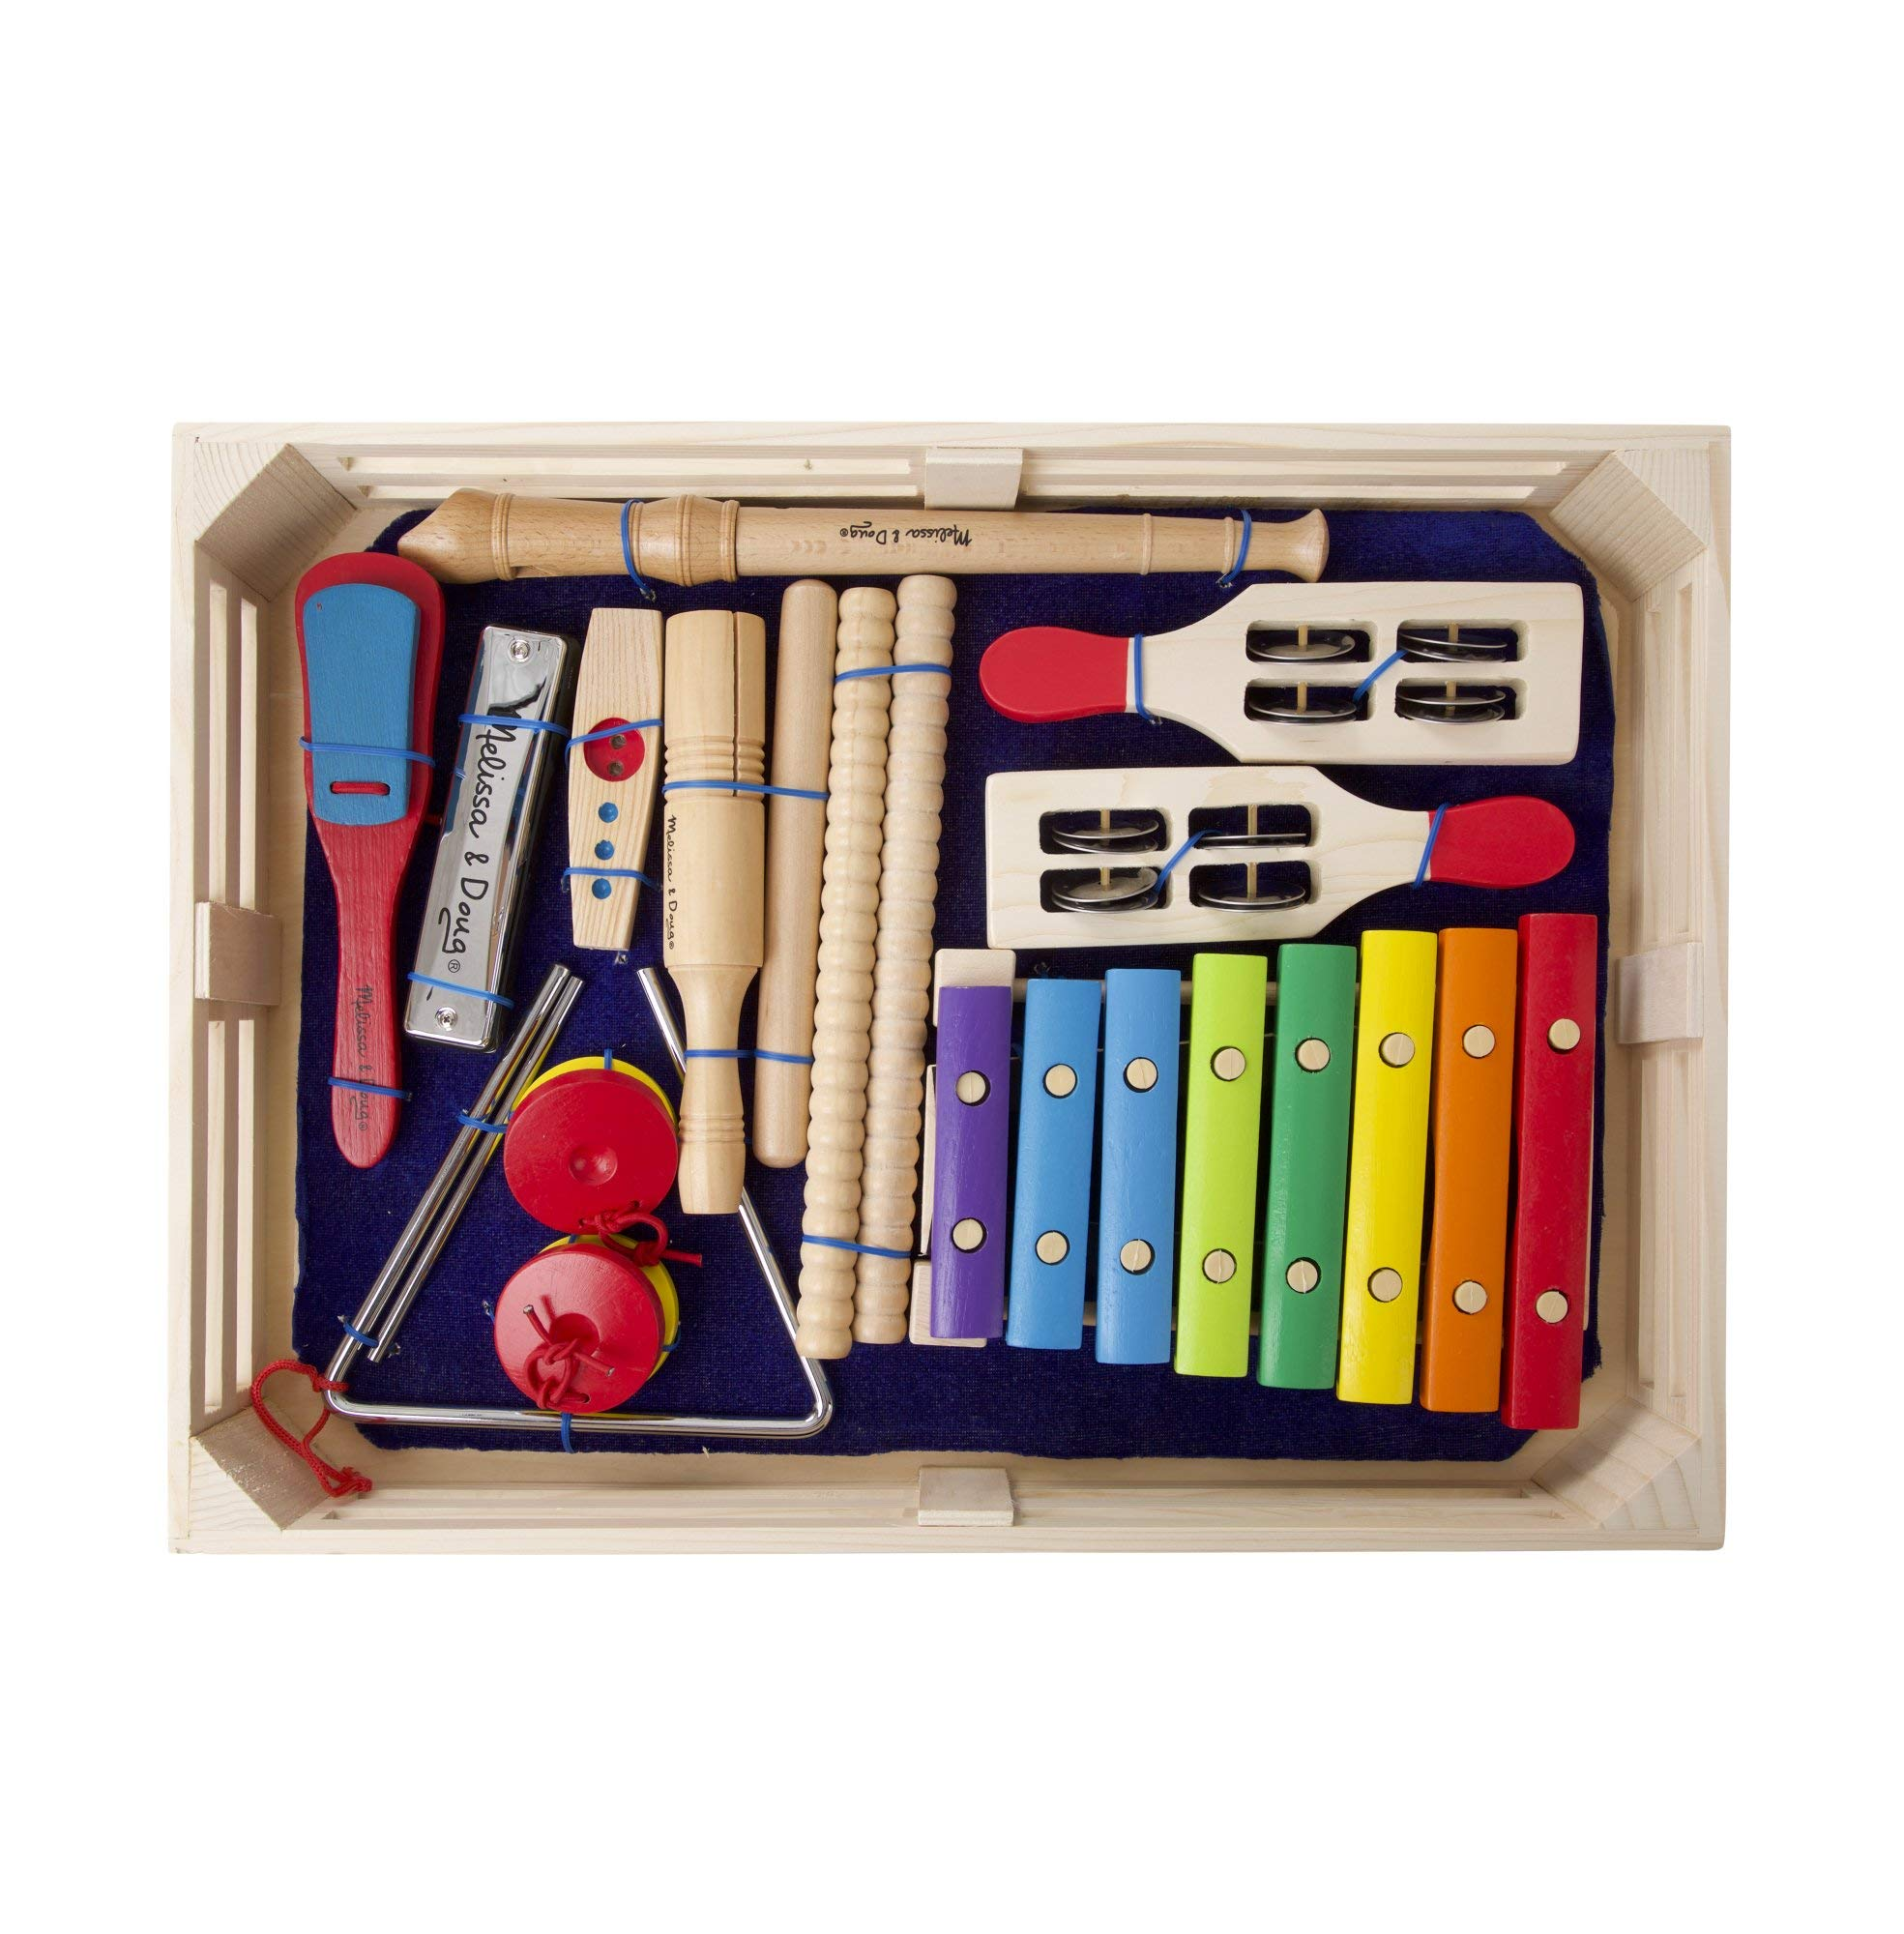 Melissa & Doug Deluxe Band Set With Wooden Musical Instruments and Storage Case by Melissa & Doug